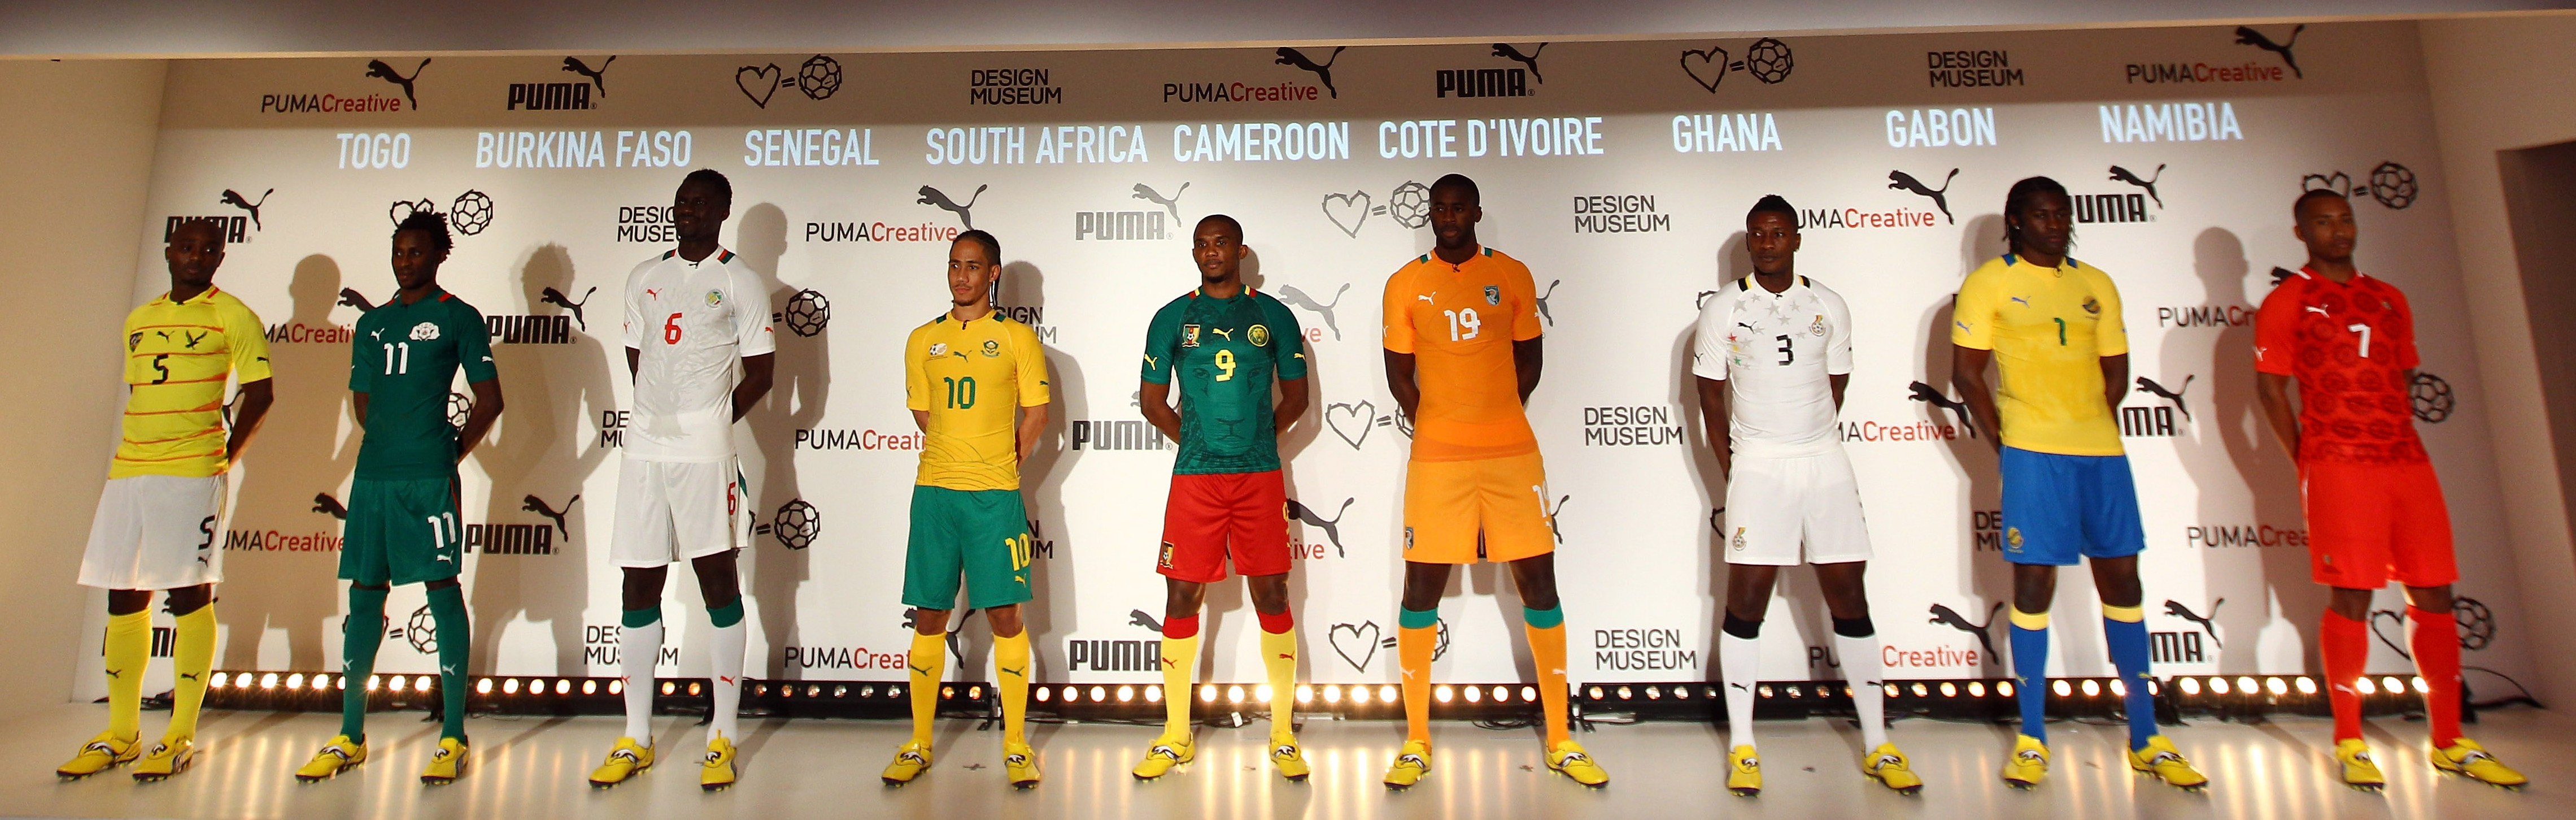 Football kit releases  PUMA unveil 2012 Africa Cup of Nations kits ... f102cc9da